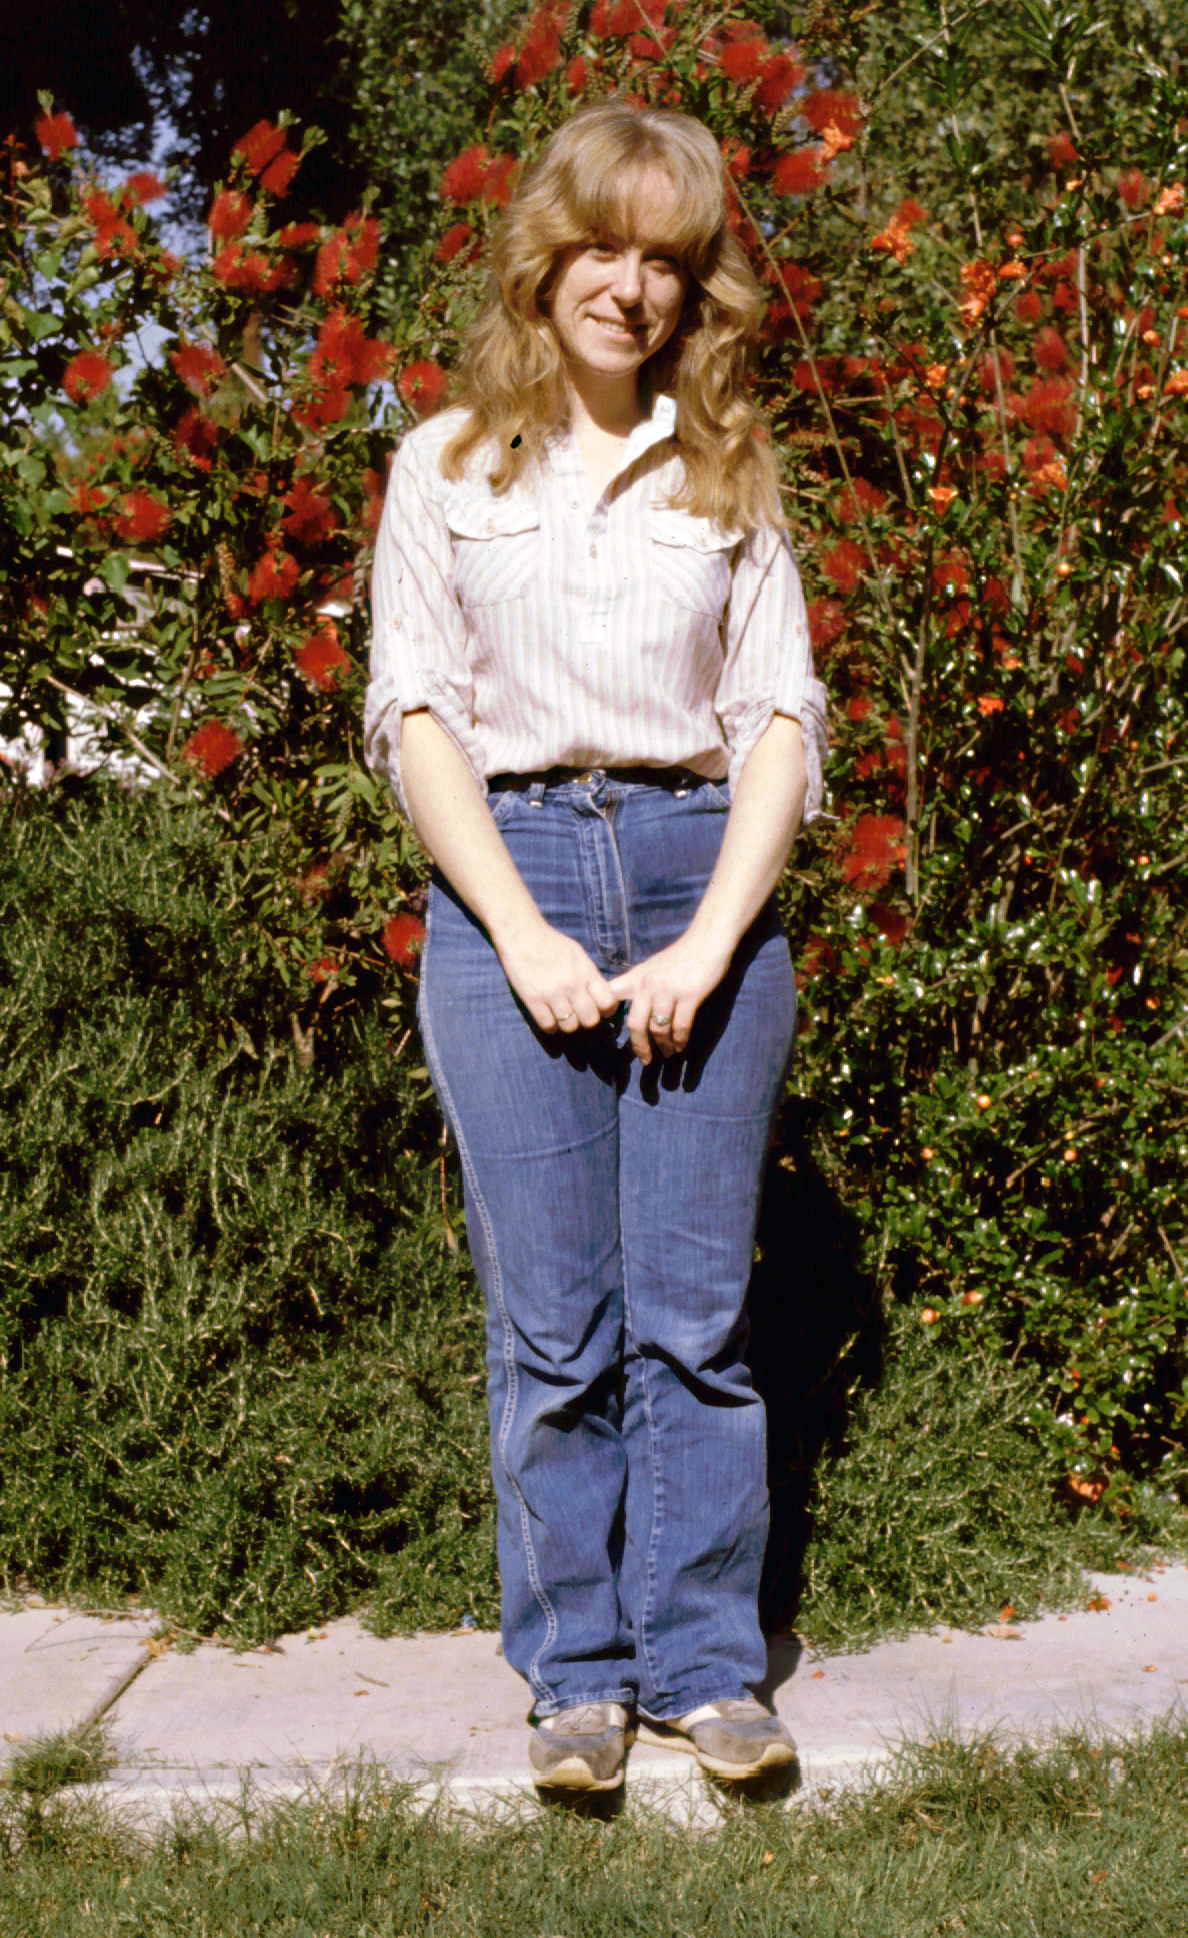 Sharon in El Cajon 1985